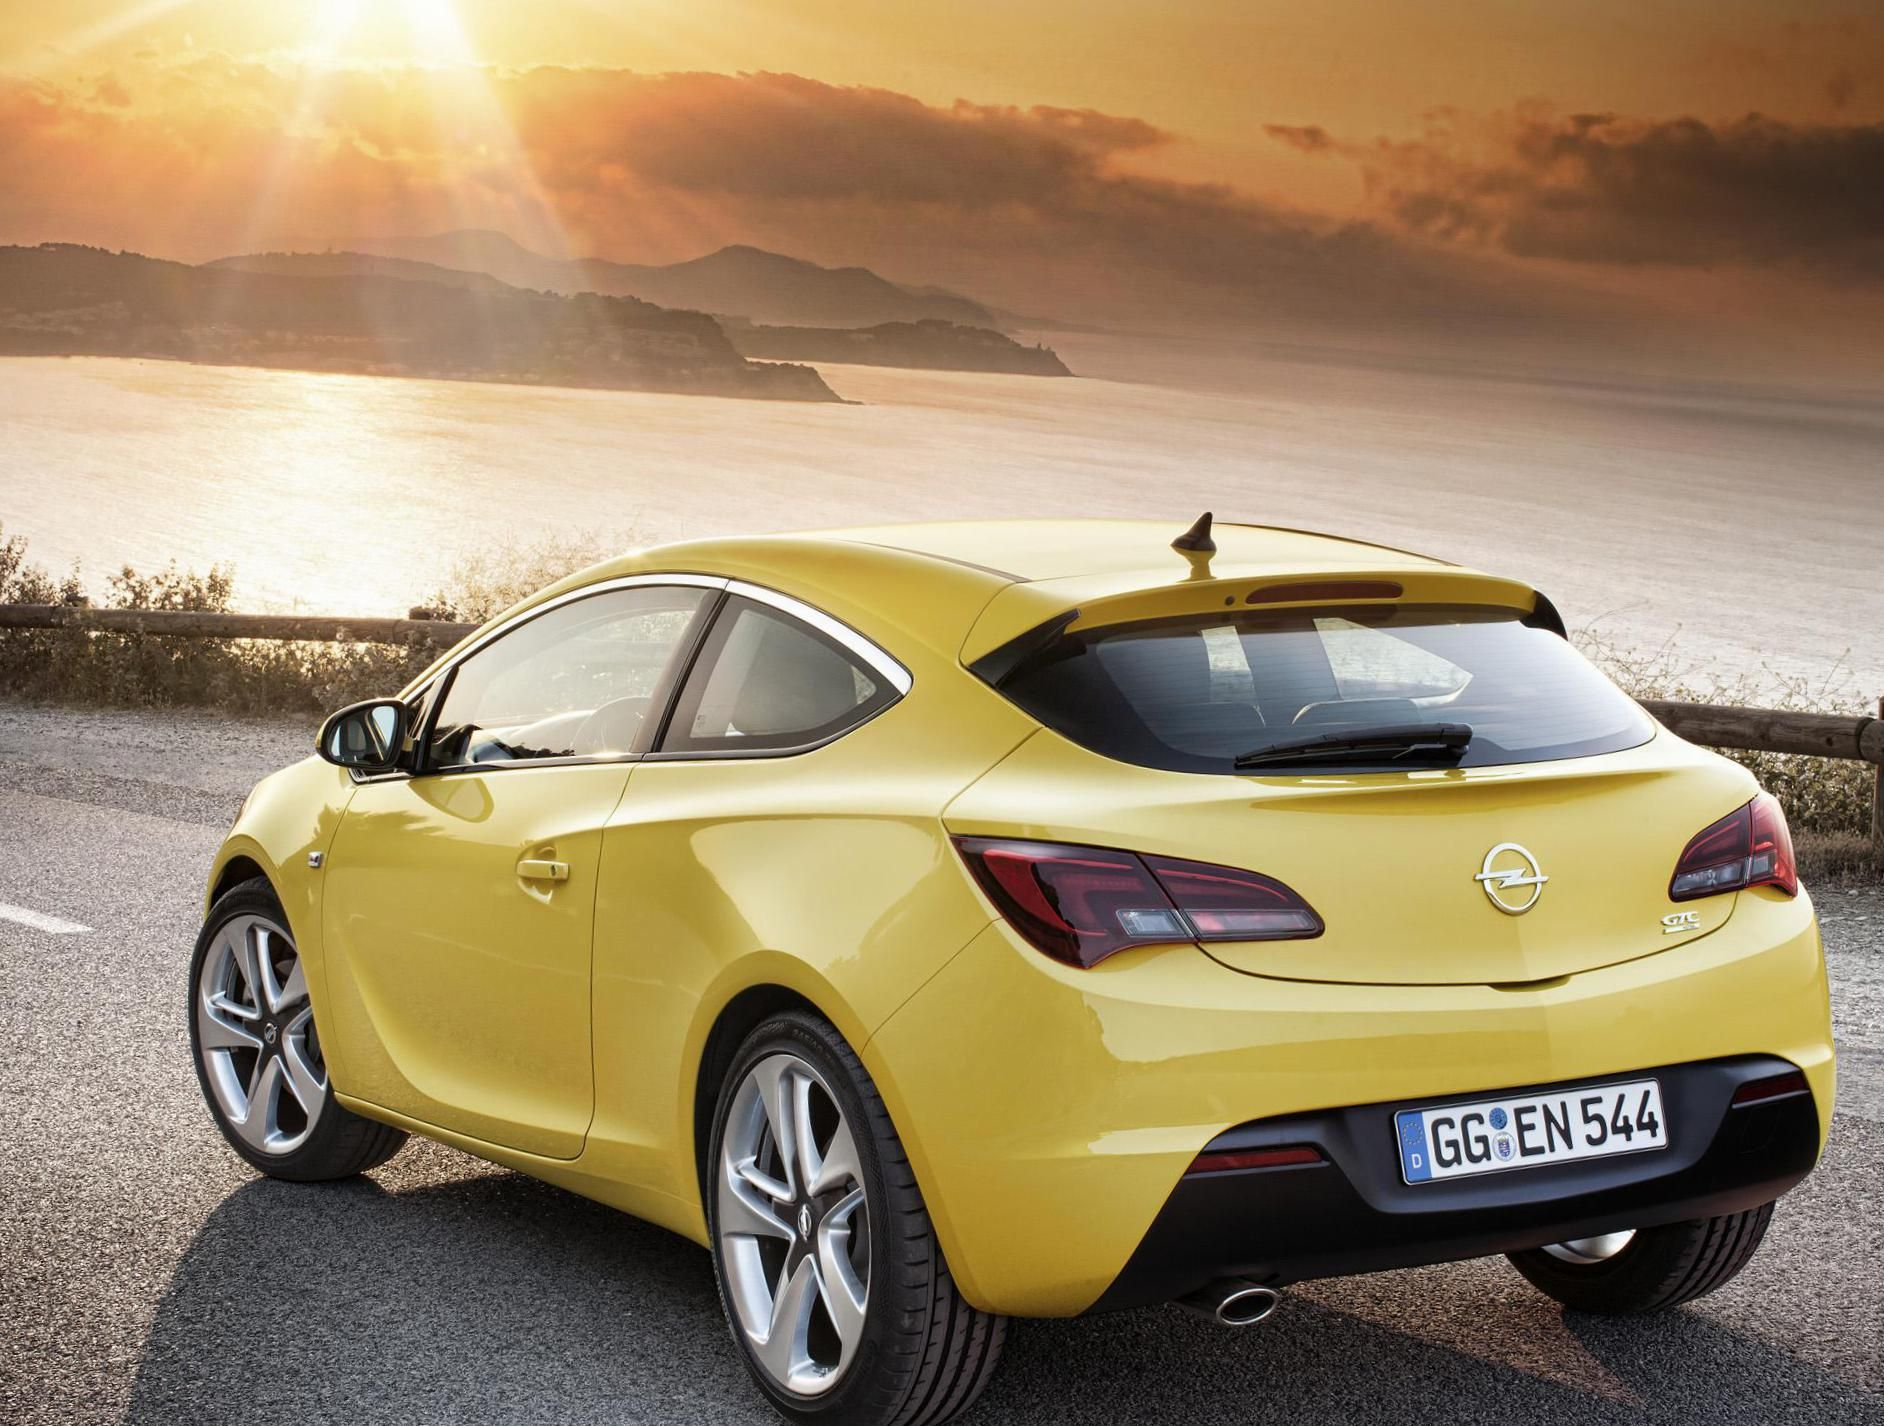 Opel Astra J Gtc Photos And Specs Photo Opel Astra J Gtc Characteristics And 24 Perfect Photos Of Opel Astra J Gtc Opel Hot Hatch Super Sport Cars